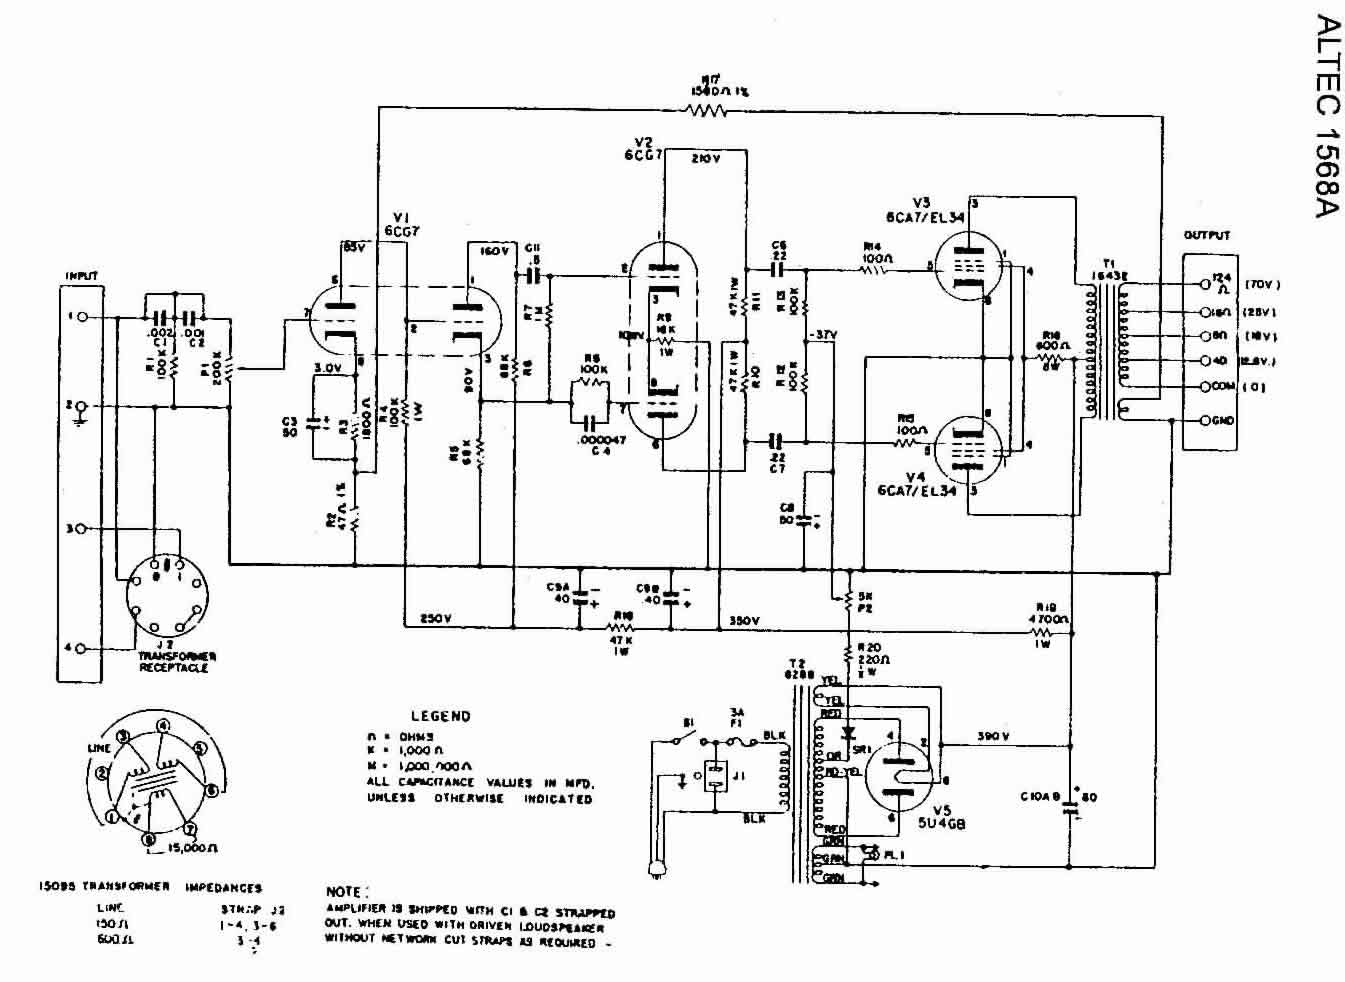 Altec Lansing Vs4121 Schematic Diagram